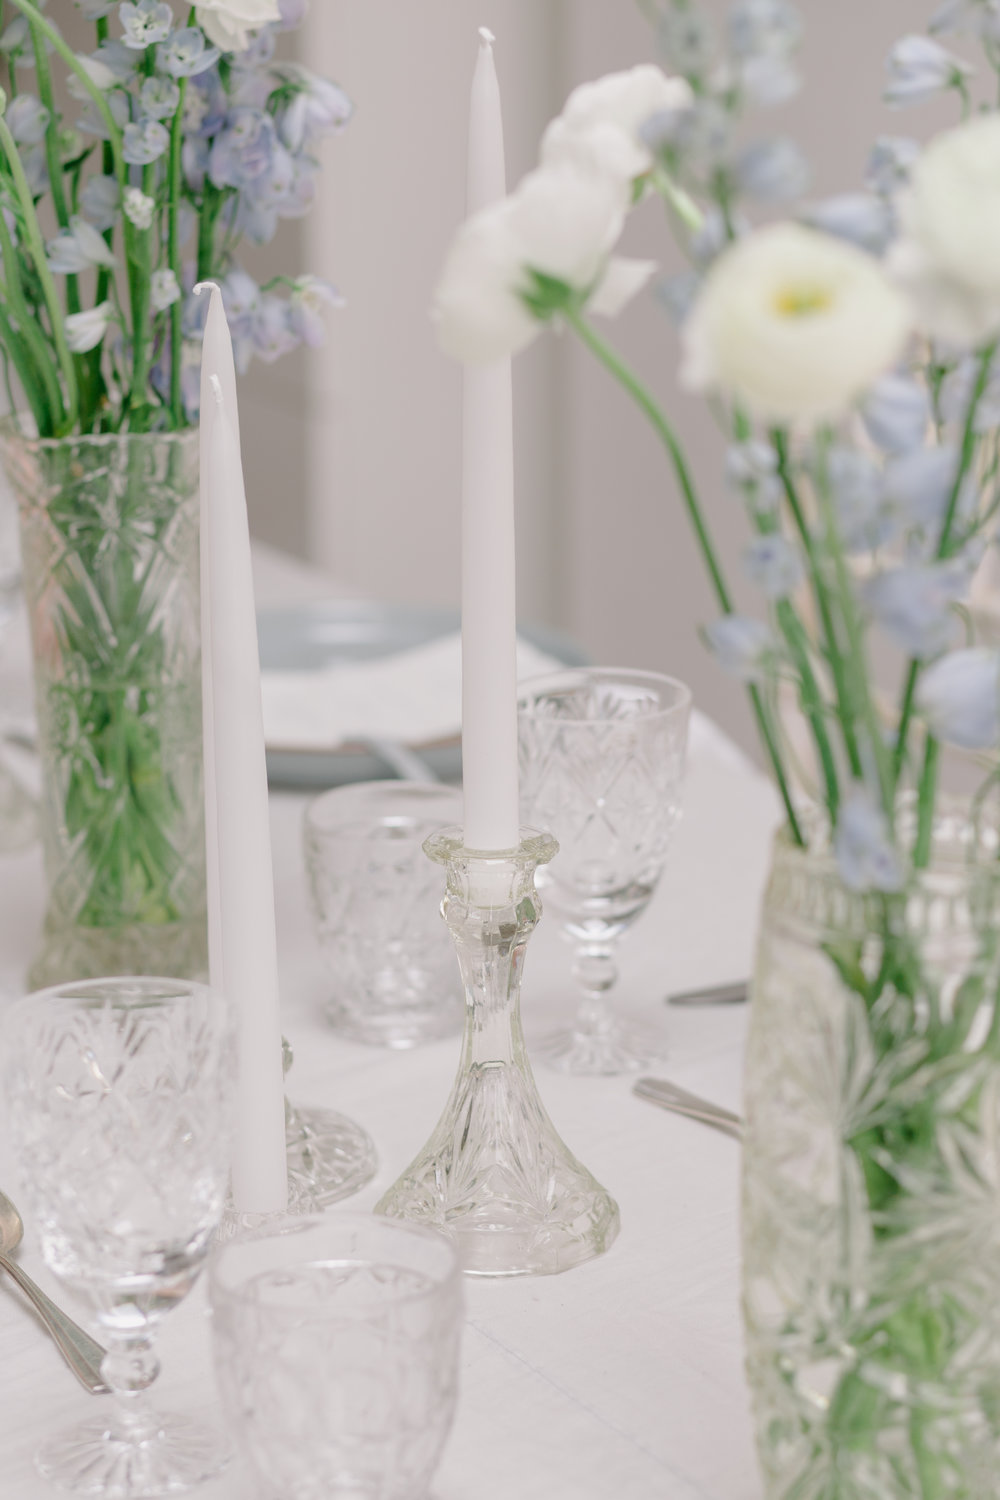 The Timeless Stylist - Simple yet Elegant Wedding Table Design